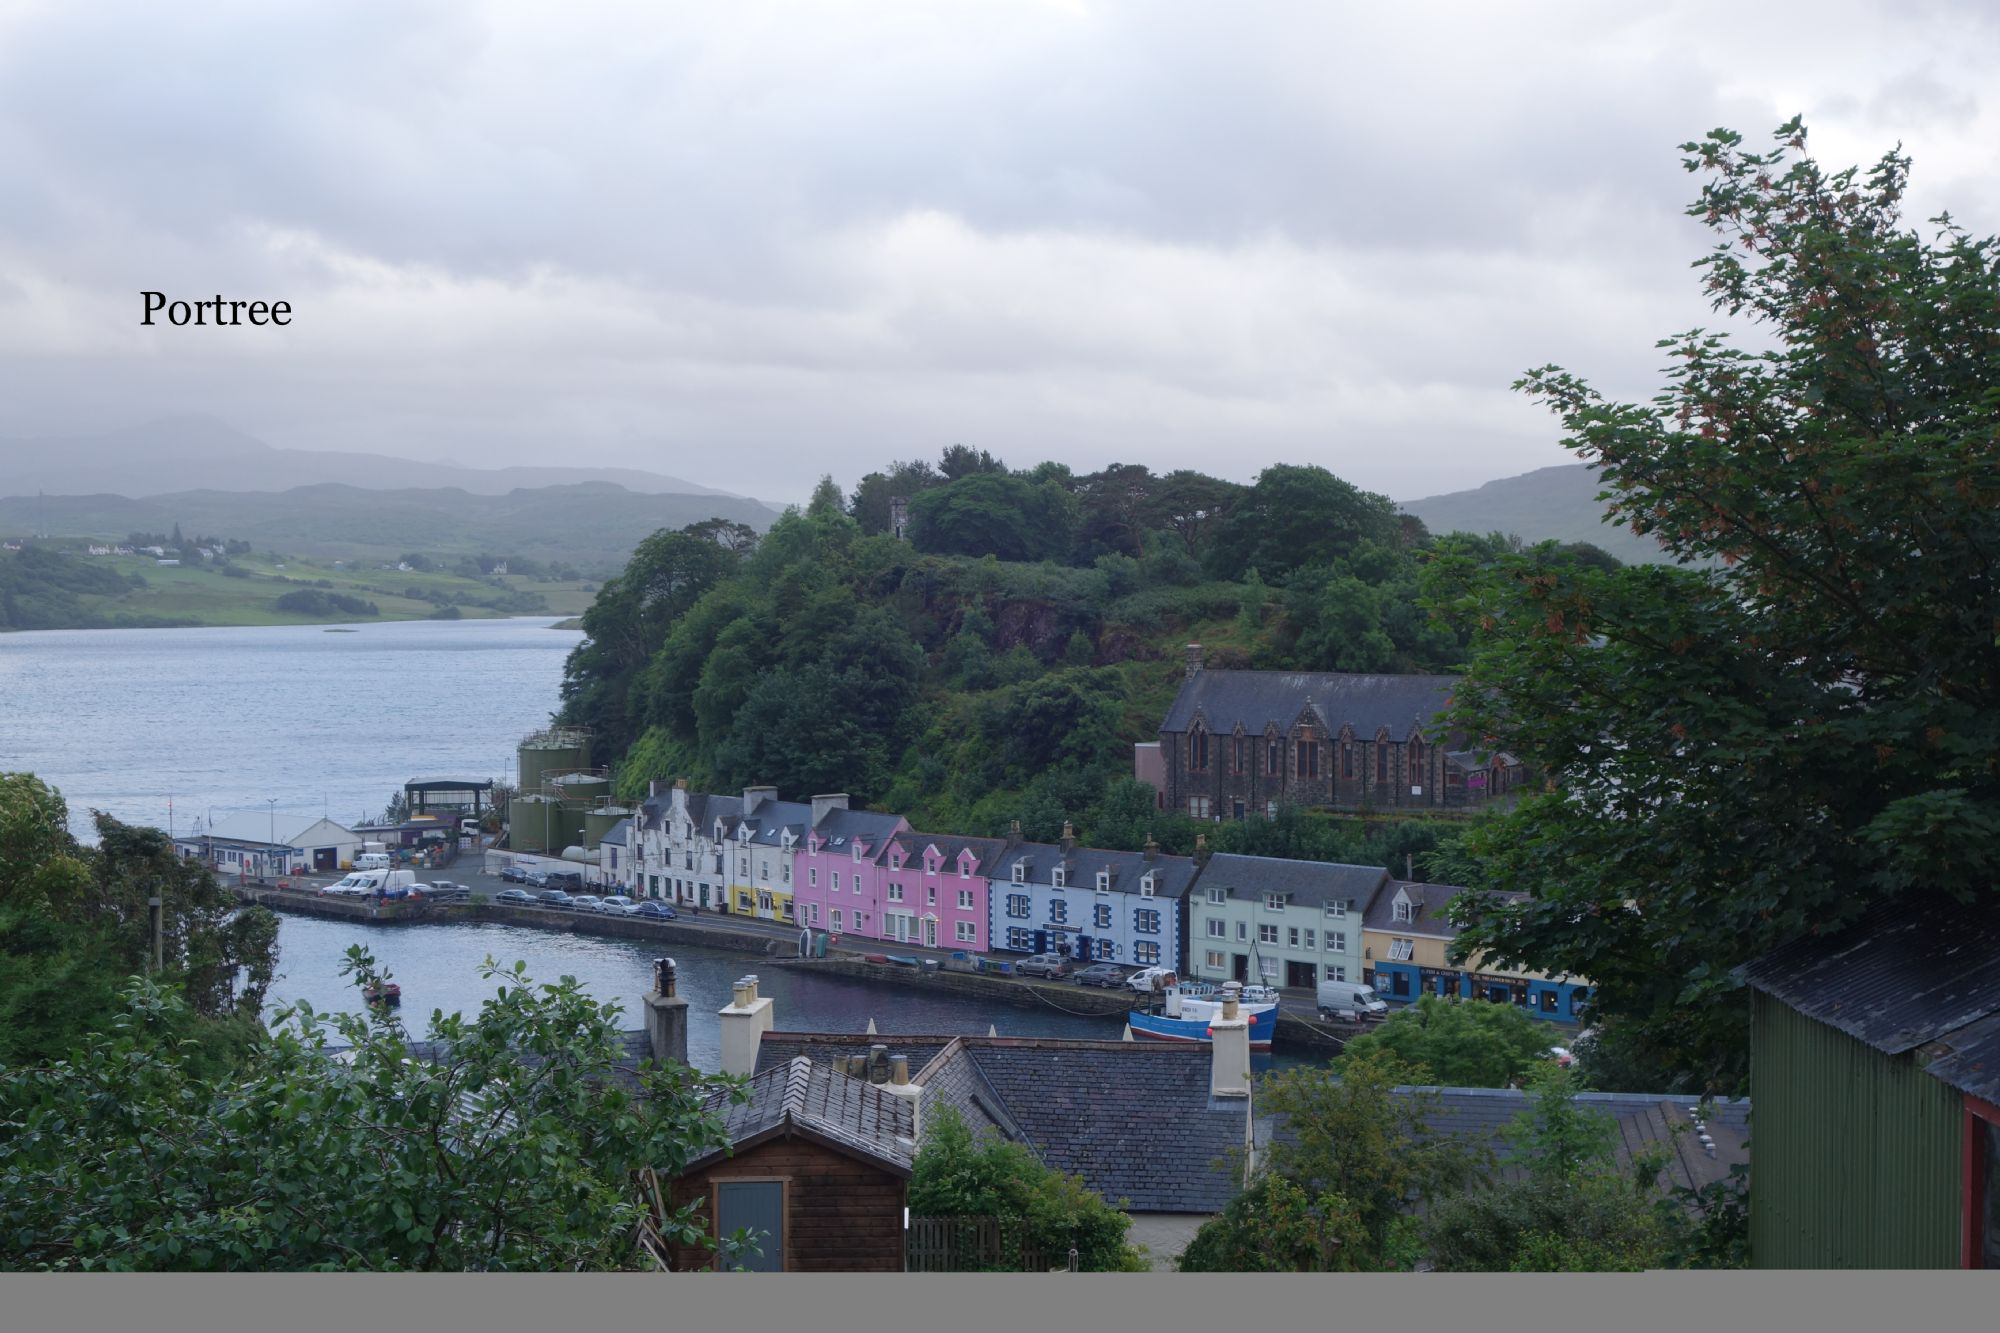 The colourful town of Portree